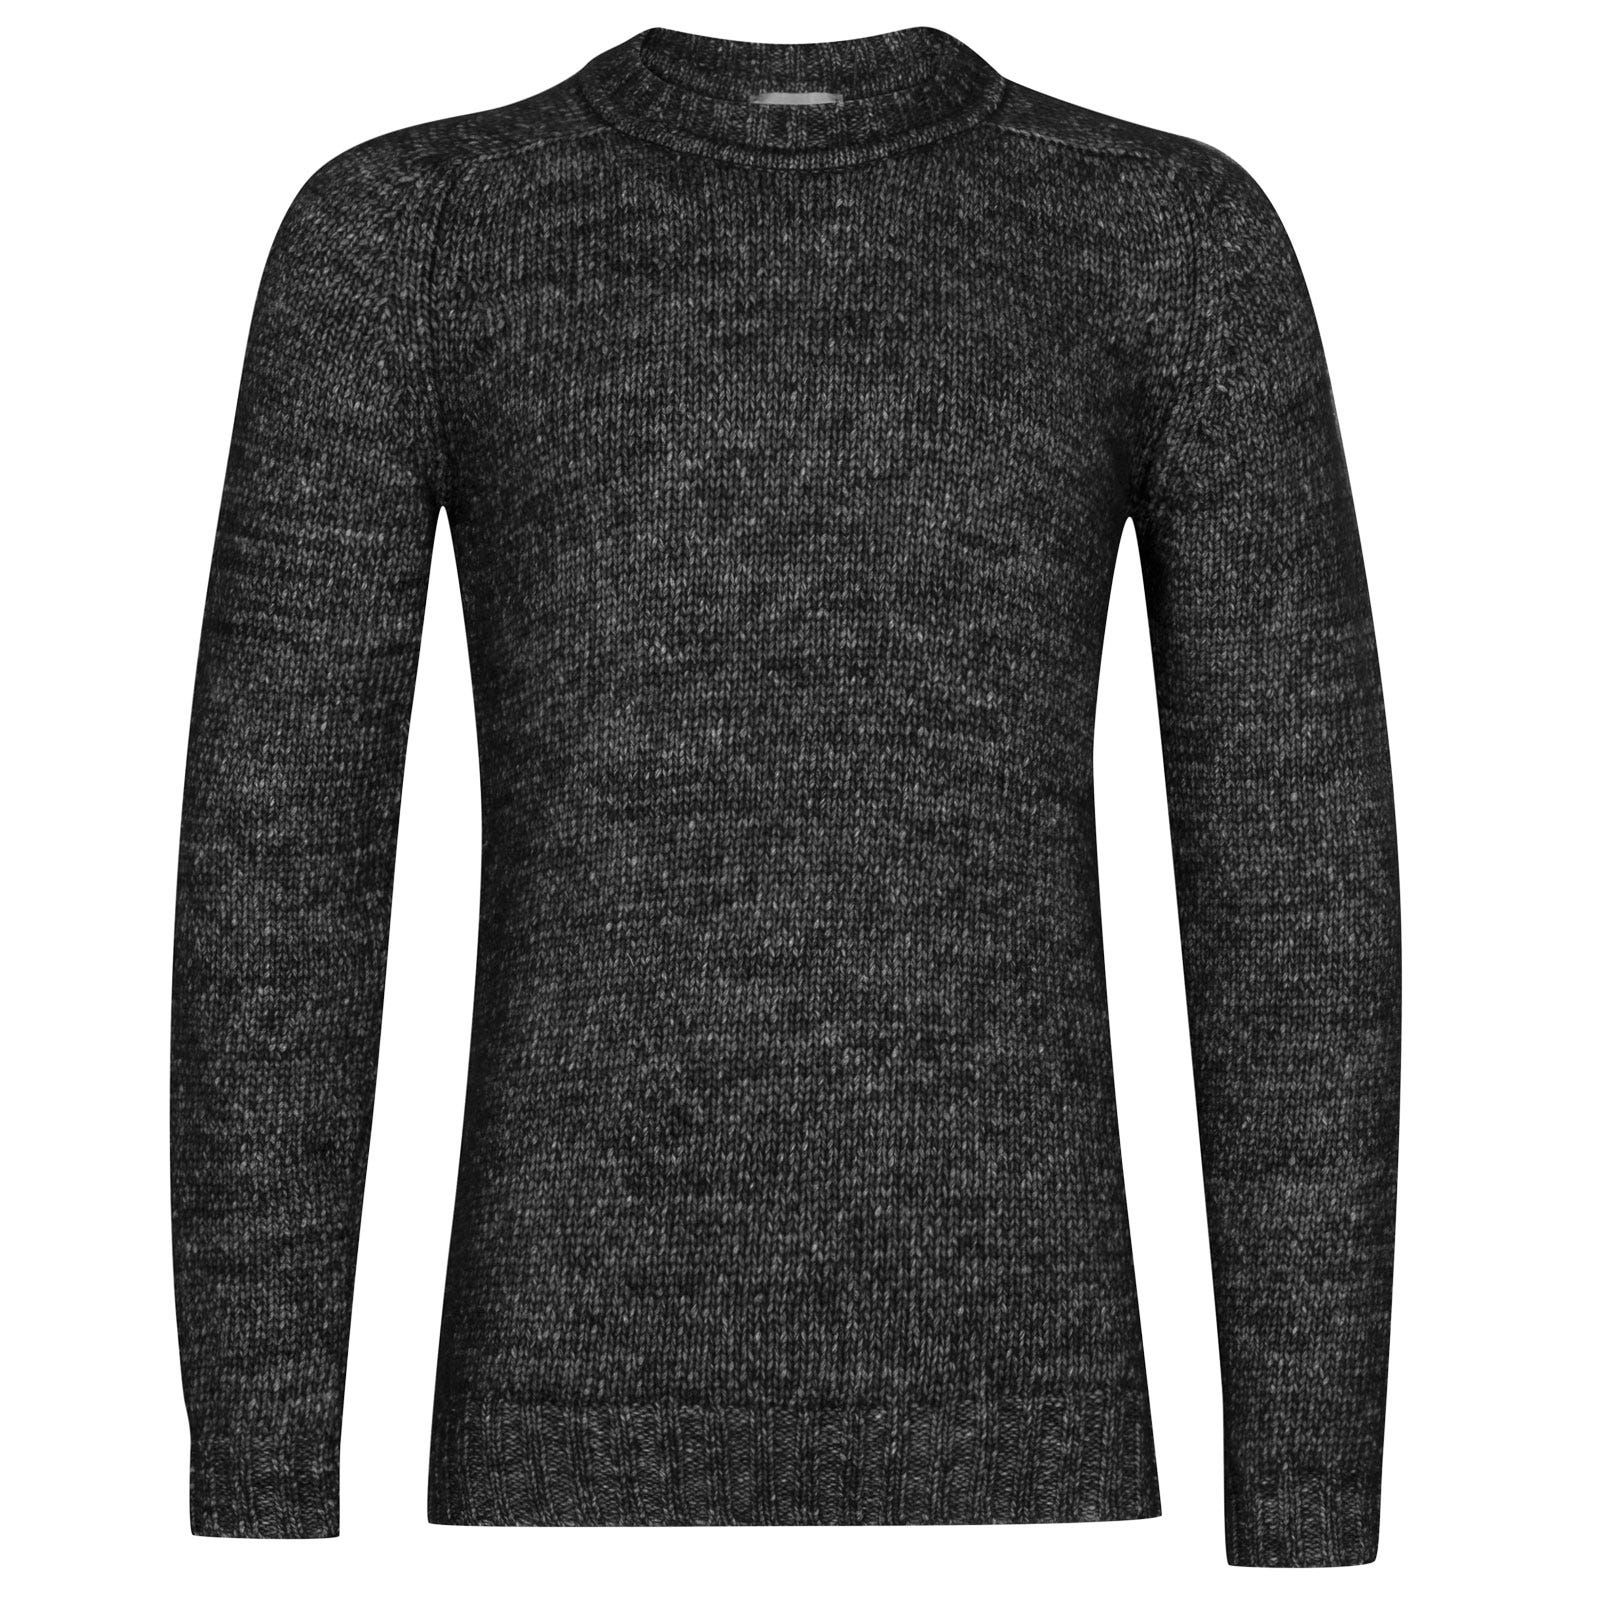 John Smedley storr Alpaca, Wool & Cotton Pullover in Black-XL